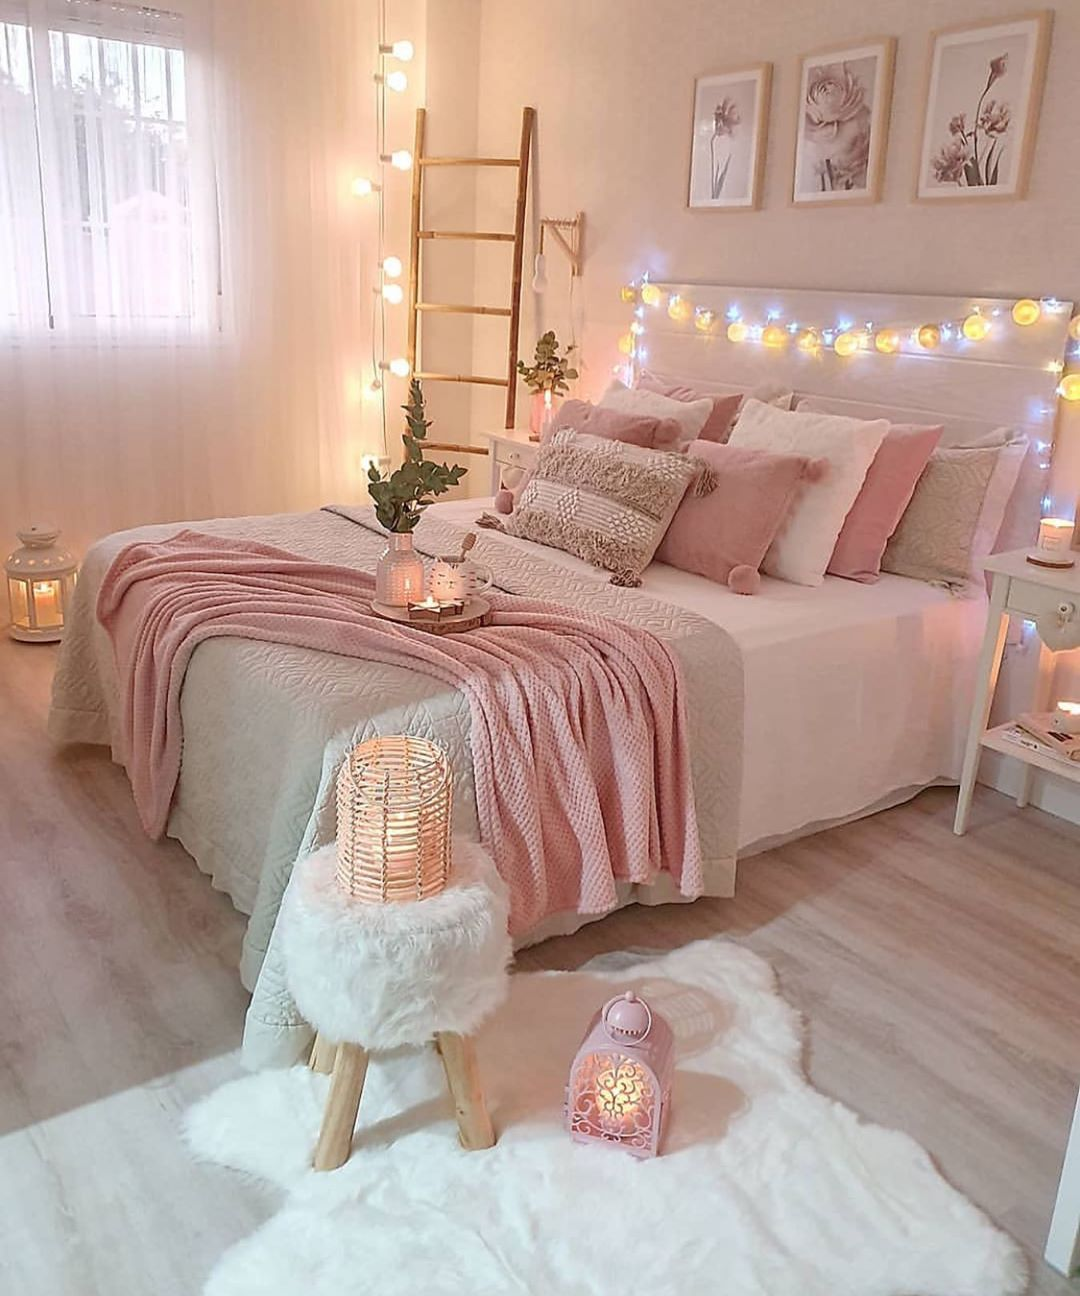 Room For Girl Interior Inspo On Instagram All The Details Double Tap If You It Credit Room Design Bedroom Aesthetic Bedroom Bedroom Decor